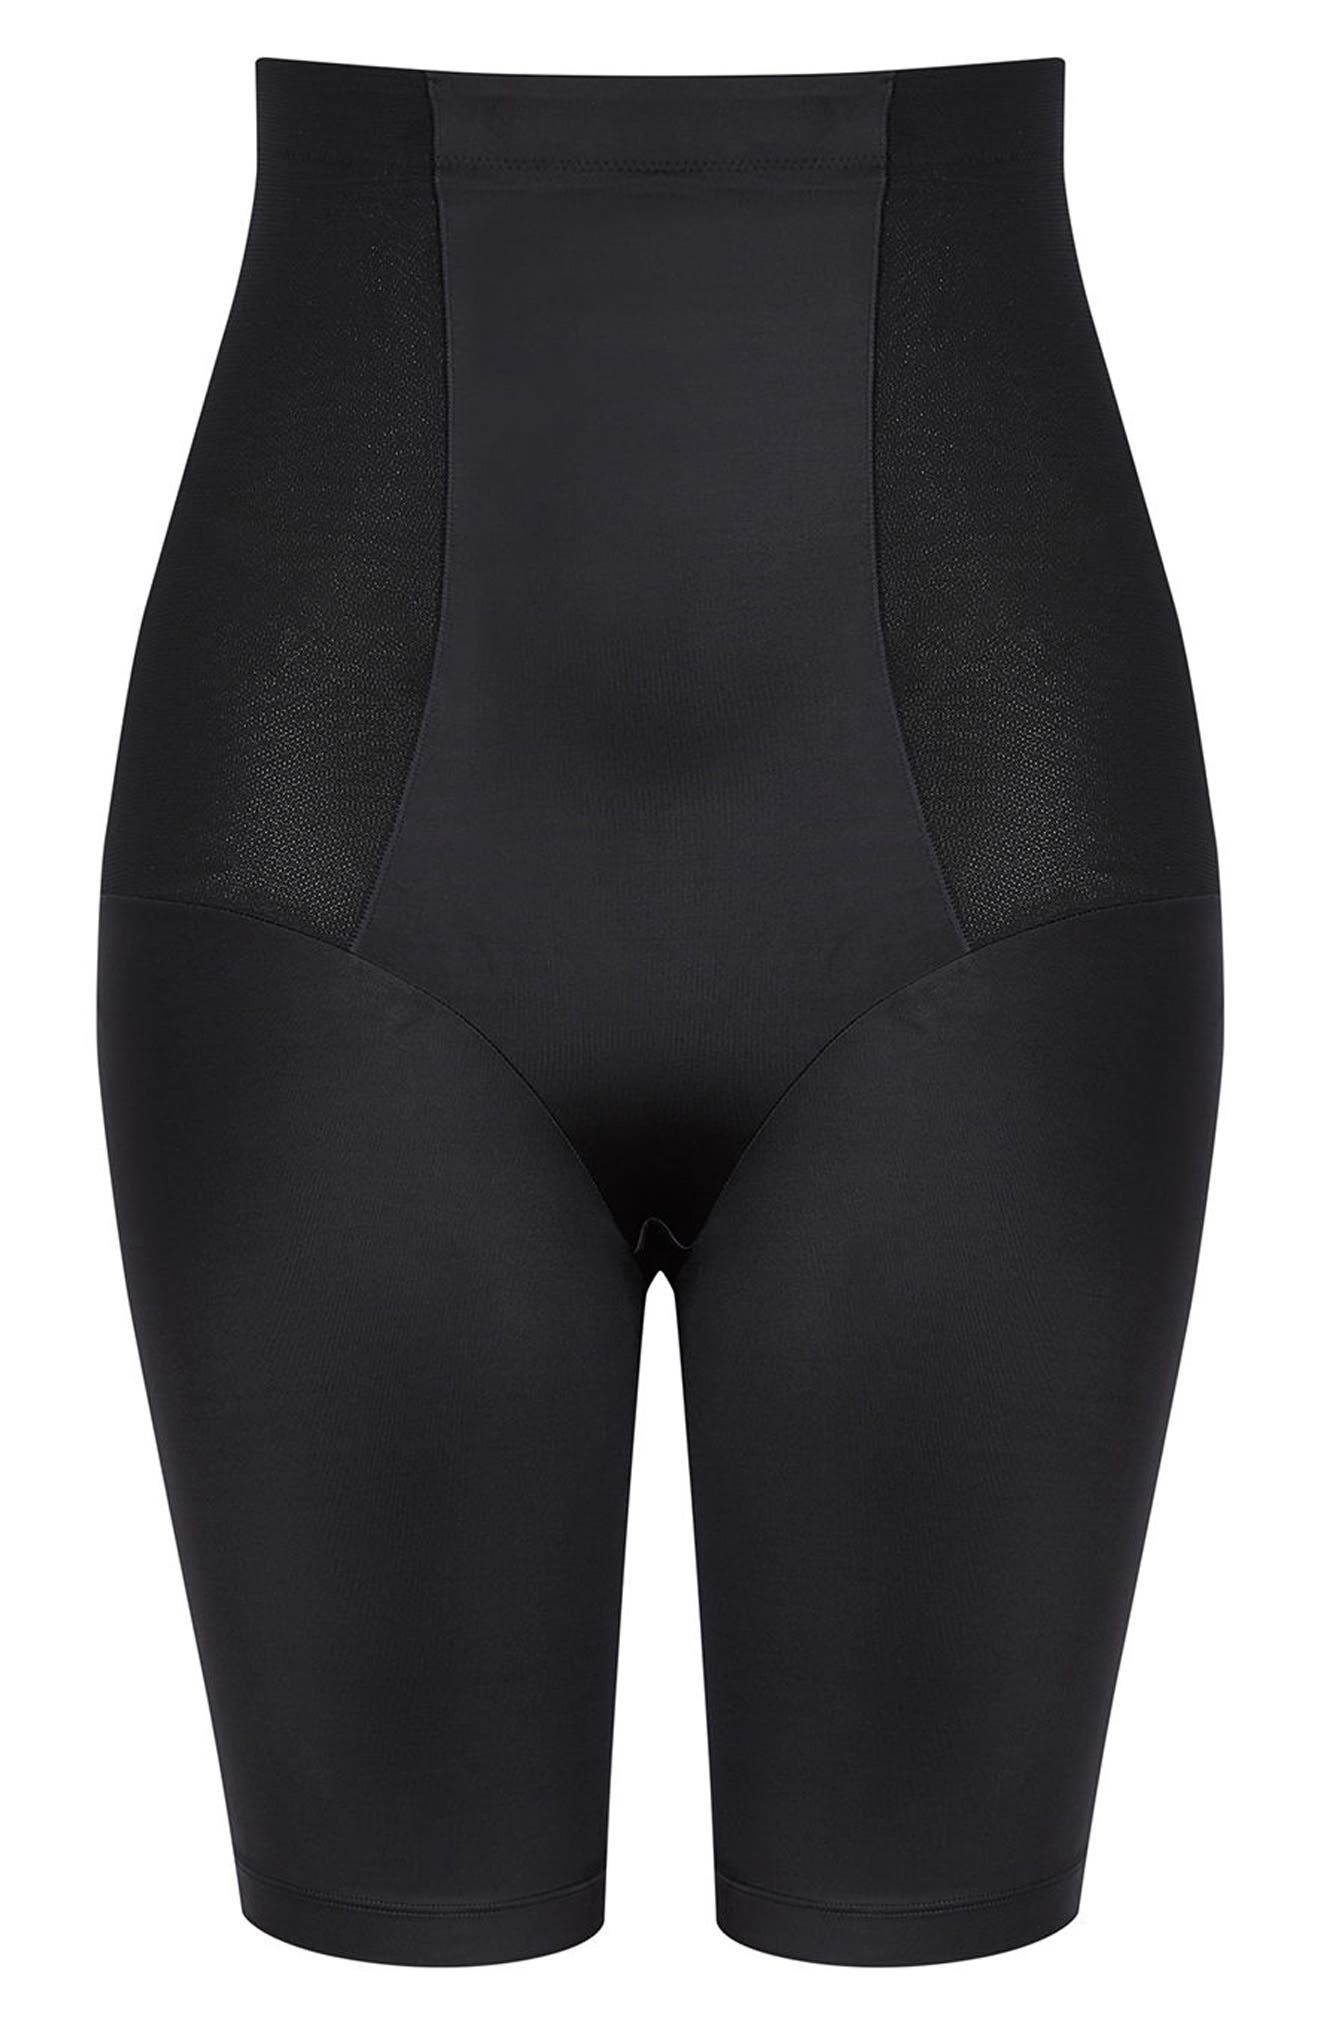 Smooth & Chic Thigh Shaper,                             Alternate thumbnail 3, color,                             BLACK